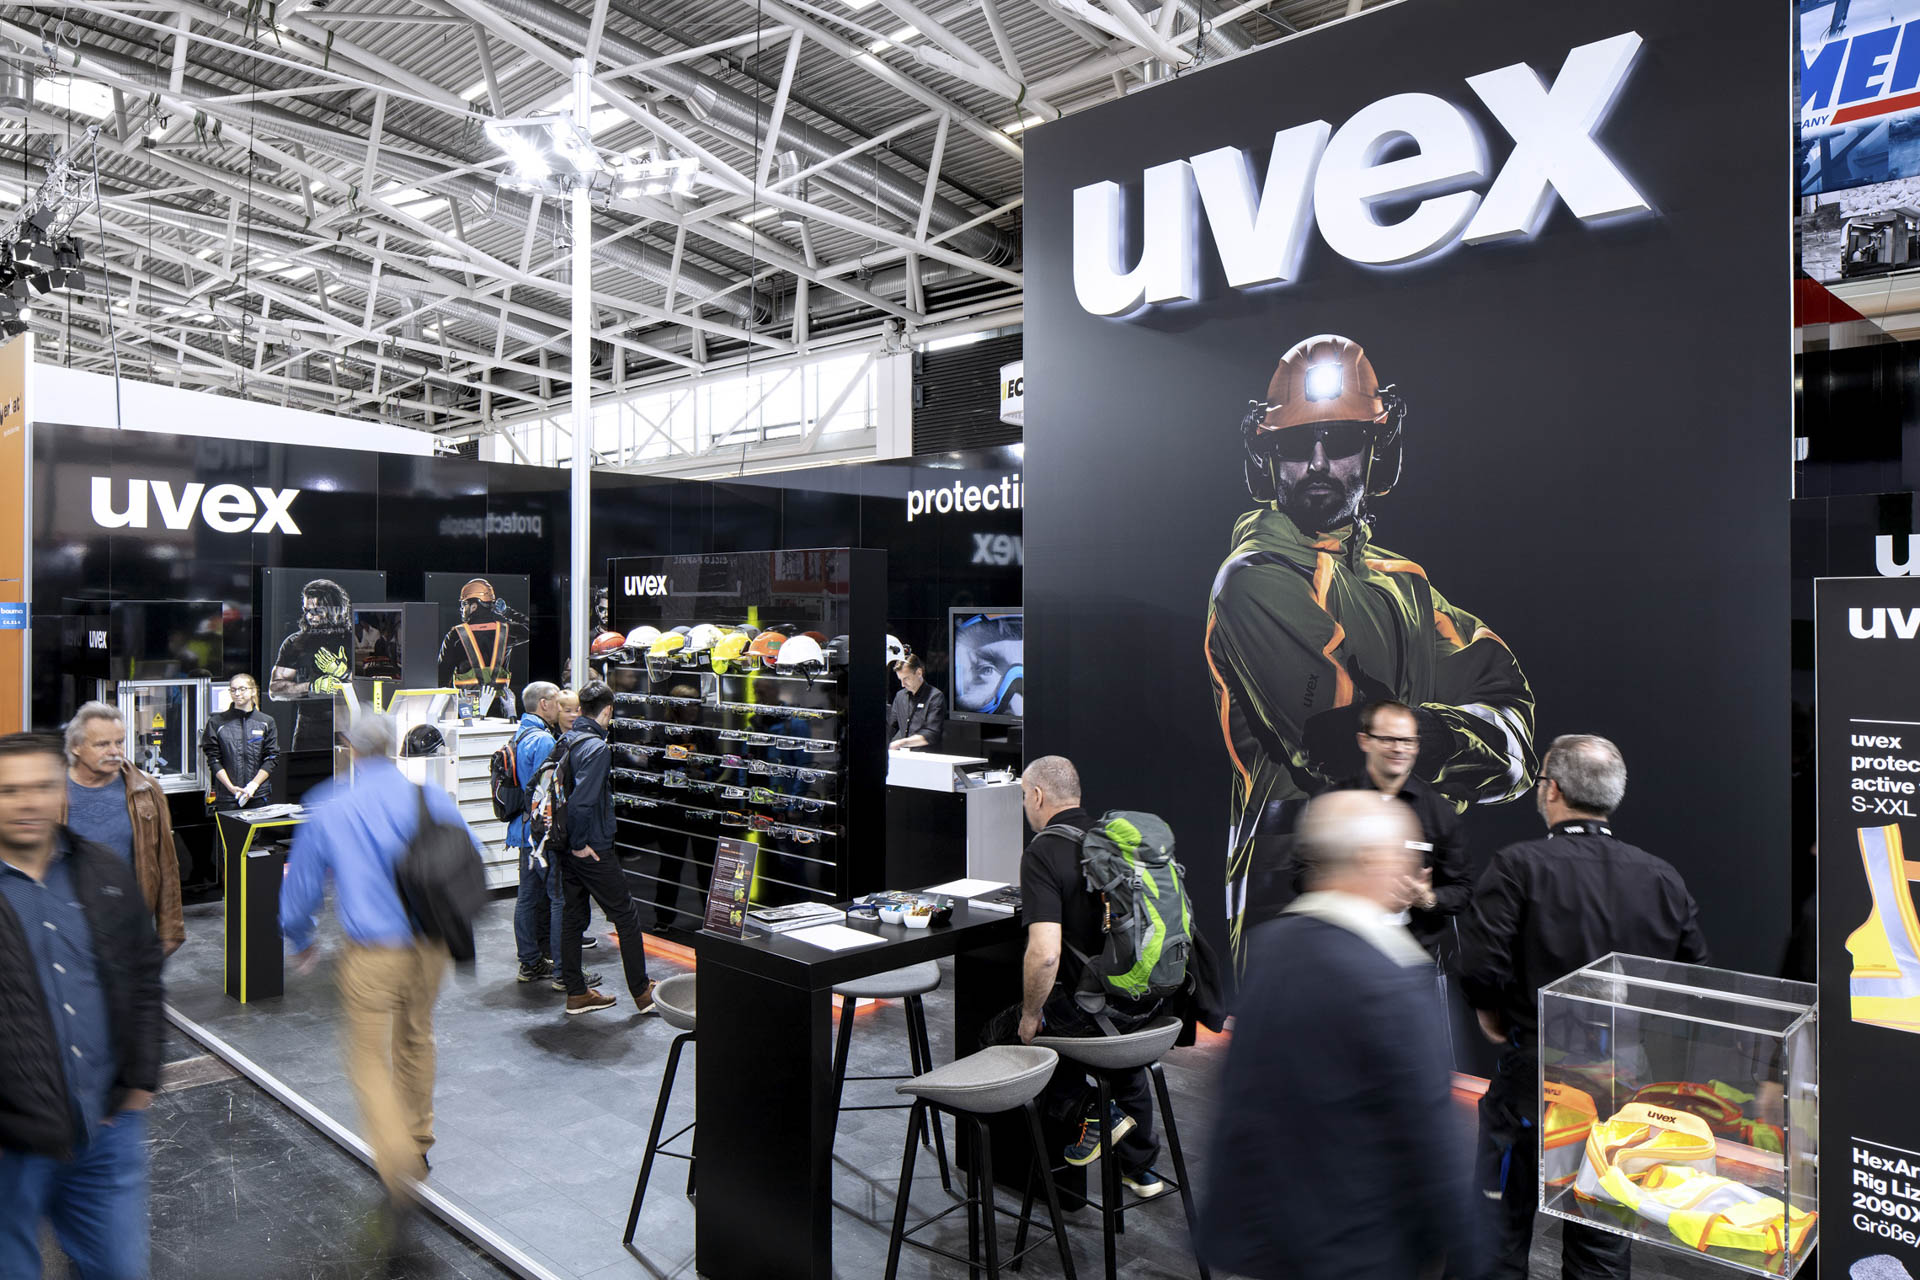 mc2 referenz Uvex Bauma2019